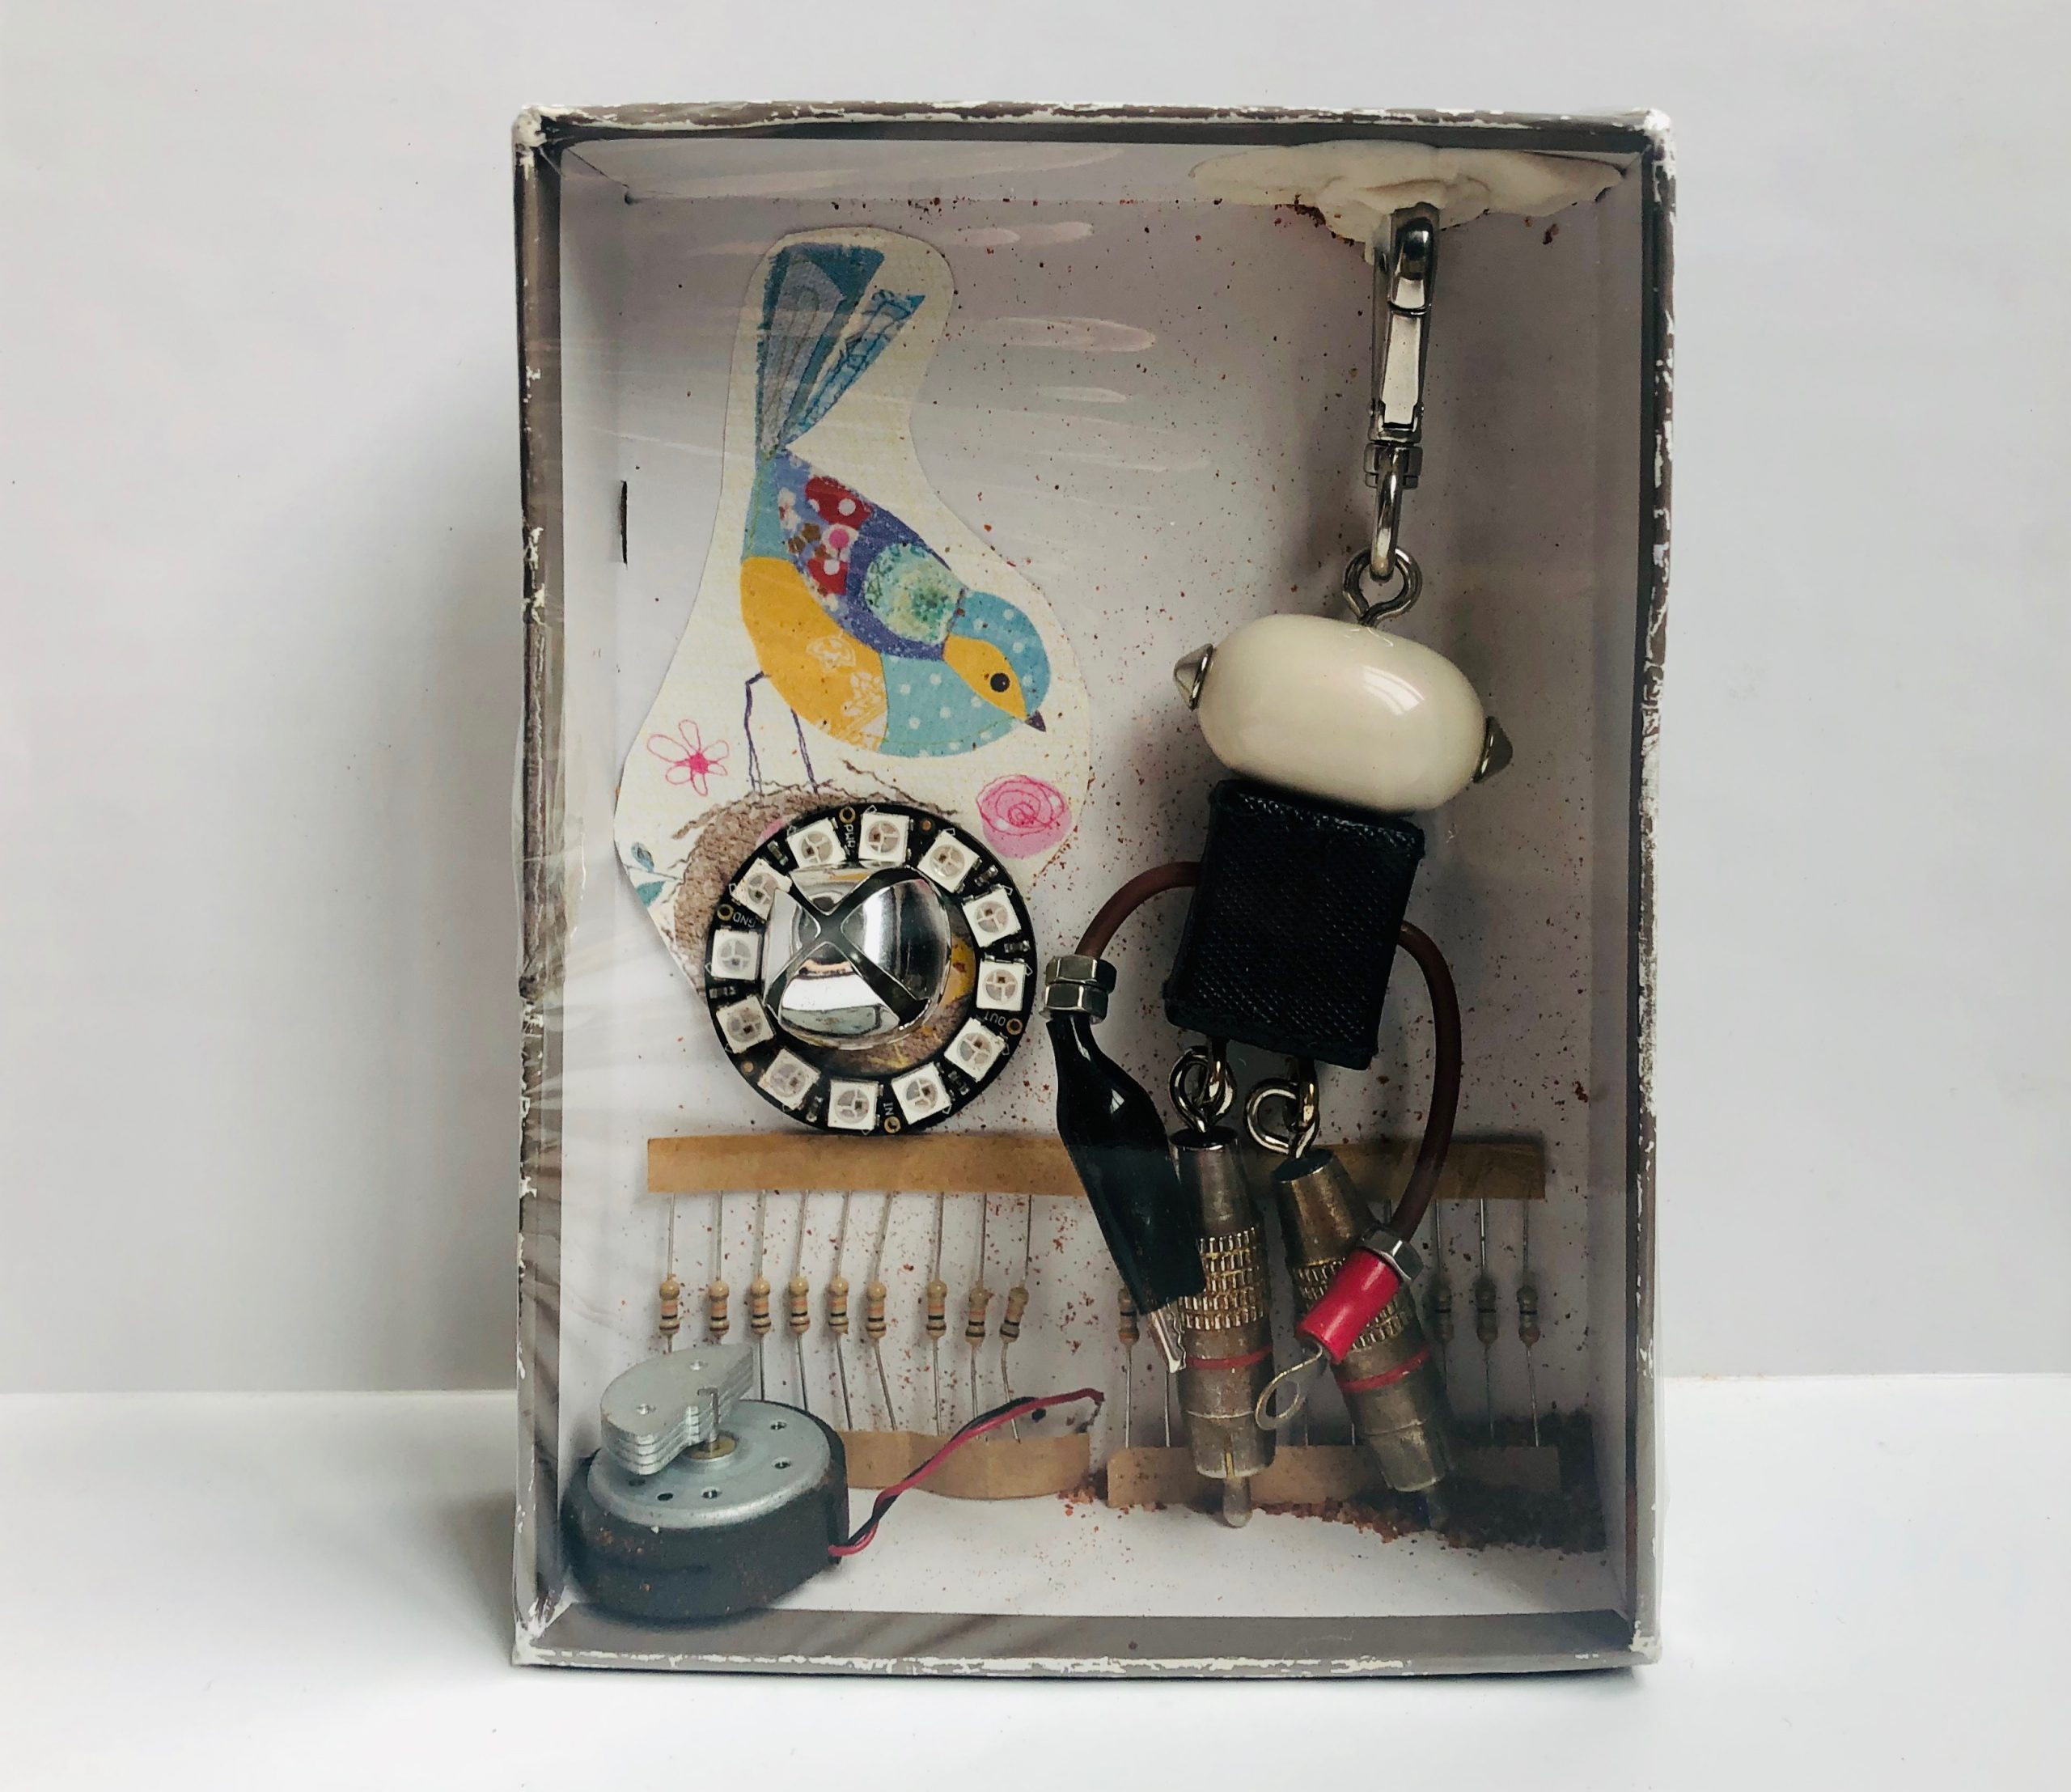 Final product of a small cardboard box covered with plastic wrap containing keychain, paper cutout of bird, jingle bell, resistors, and other found objects